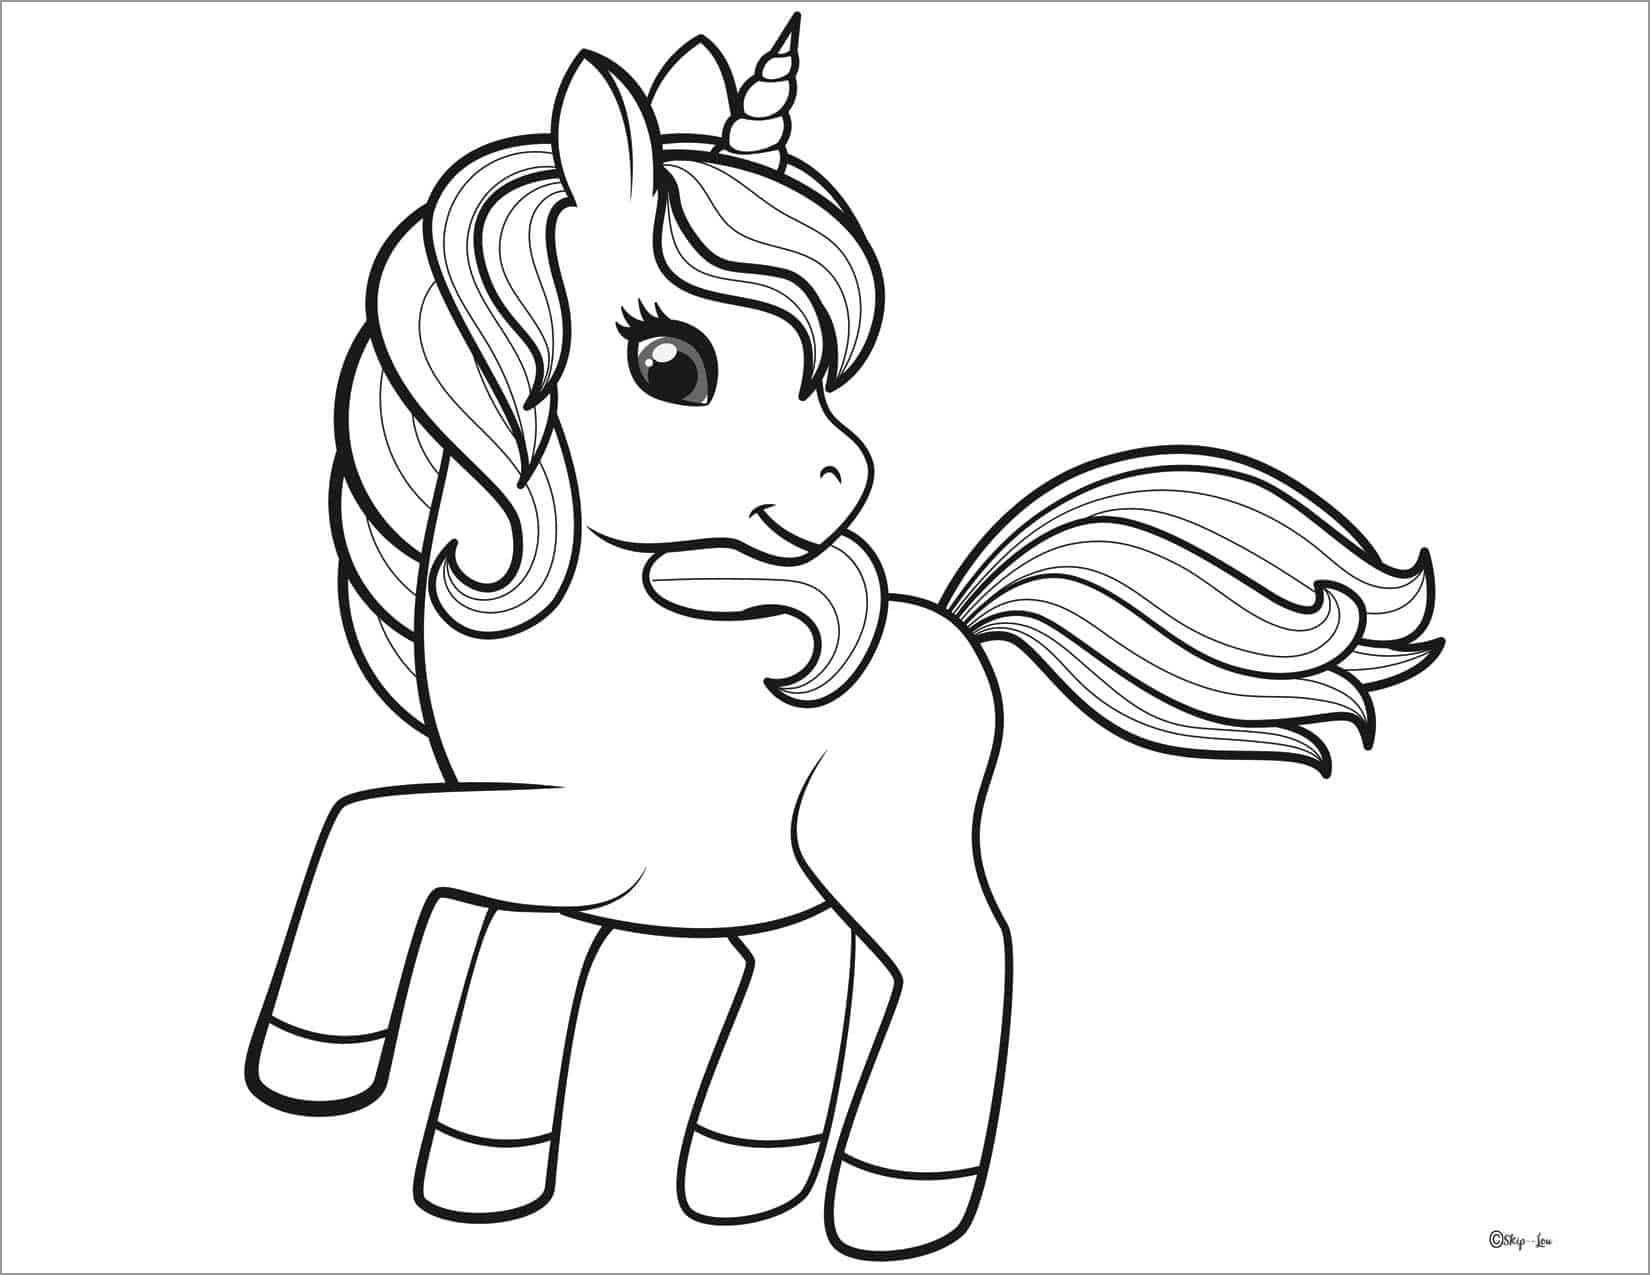 Cartoon Unicorn Coloring Page for Kids